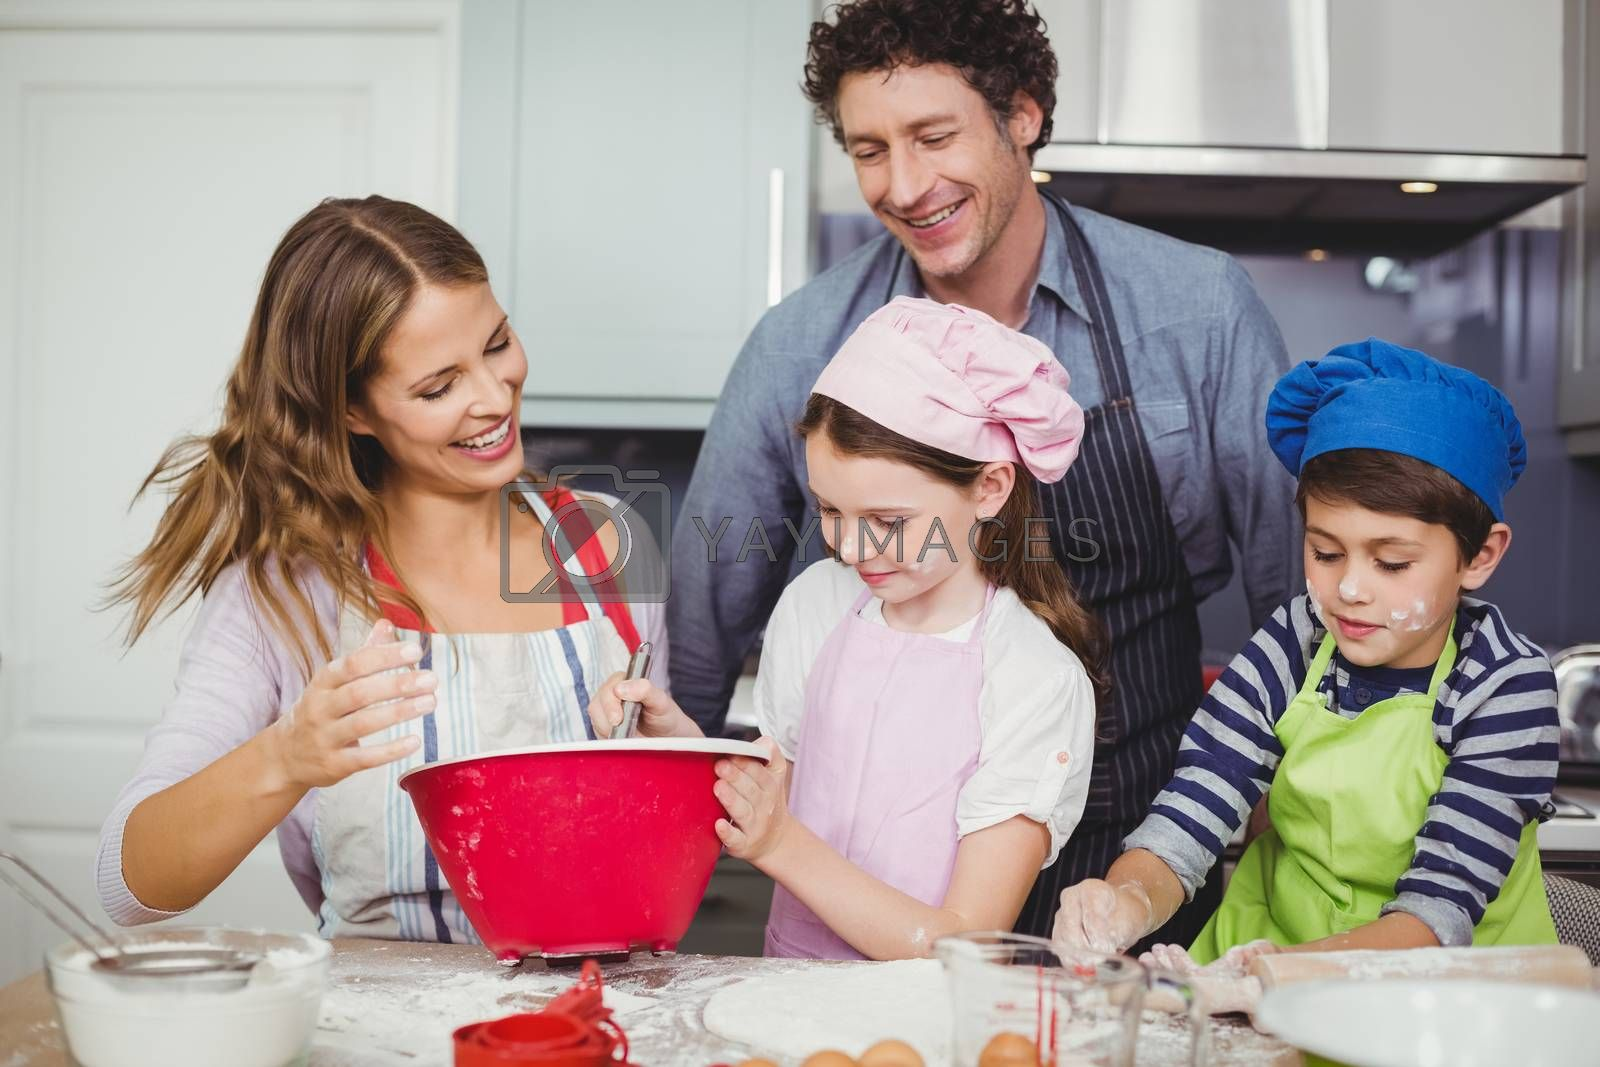 Happy family preparing food in kitchen by Wavebreakmedia